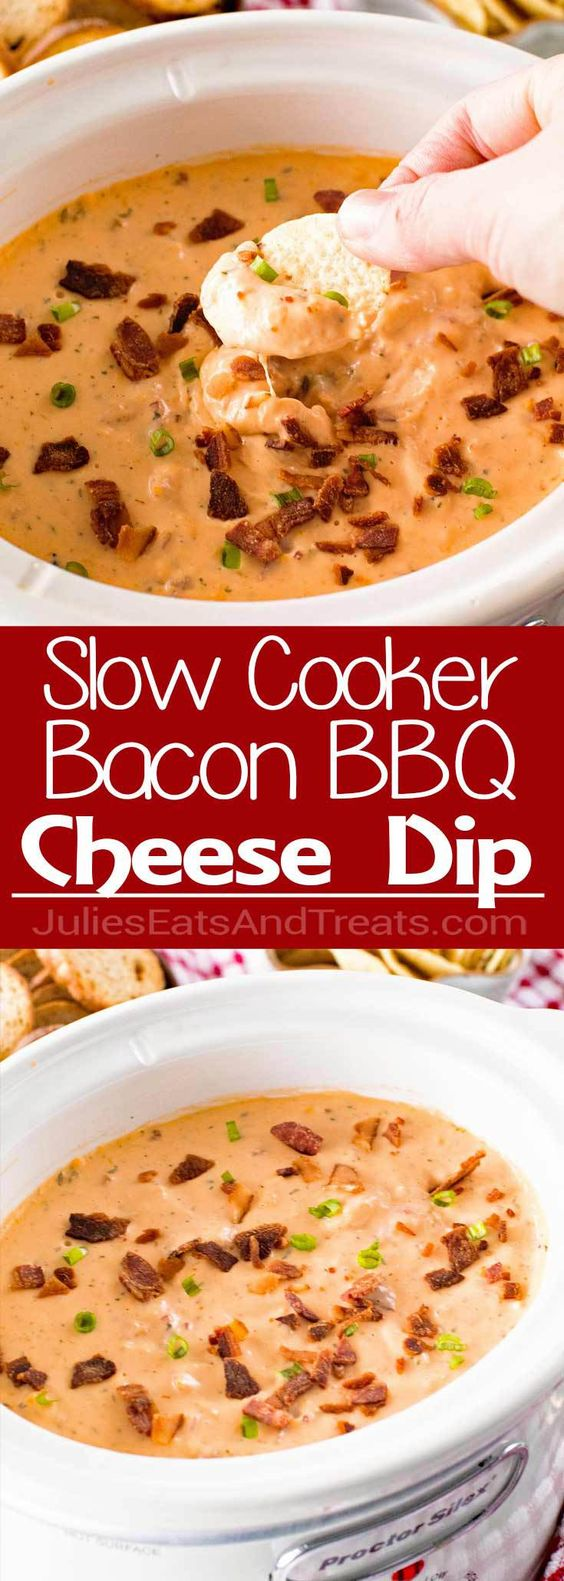 Slow Cooker Bacon Cheesy BBQ Chicken Dip SLOW COOKER BACON CHEESY BBQ CHICKEN DIP